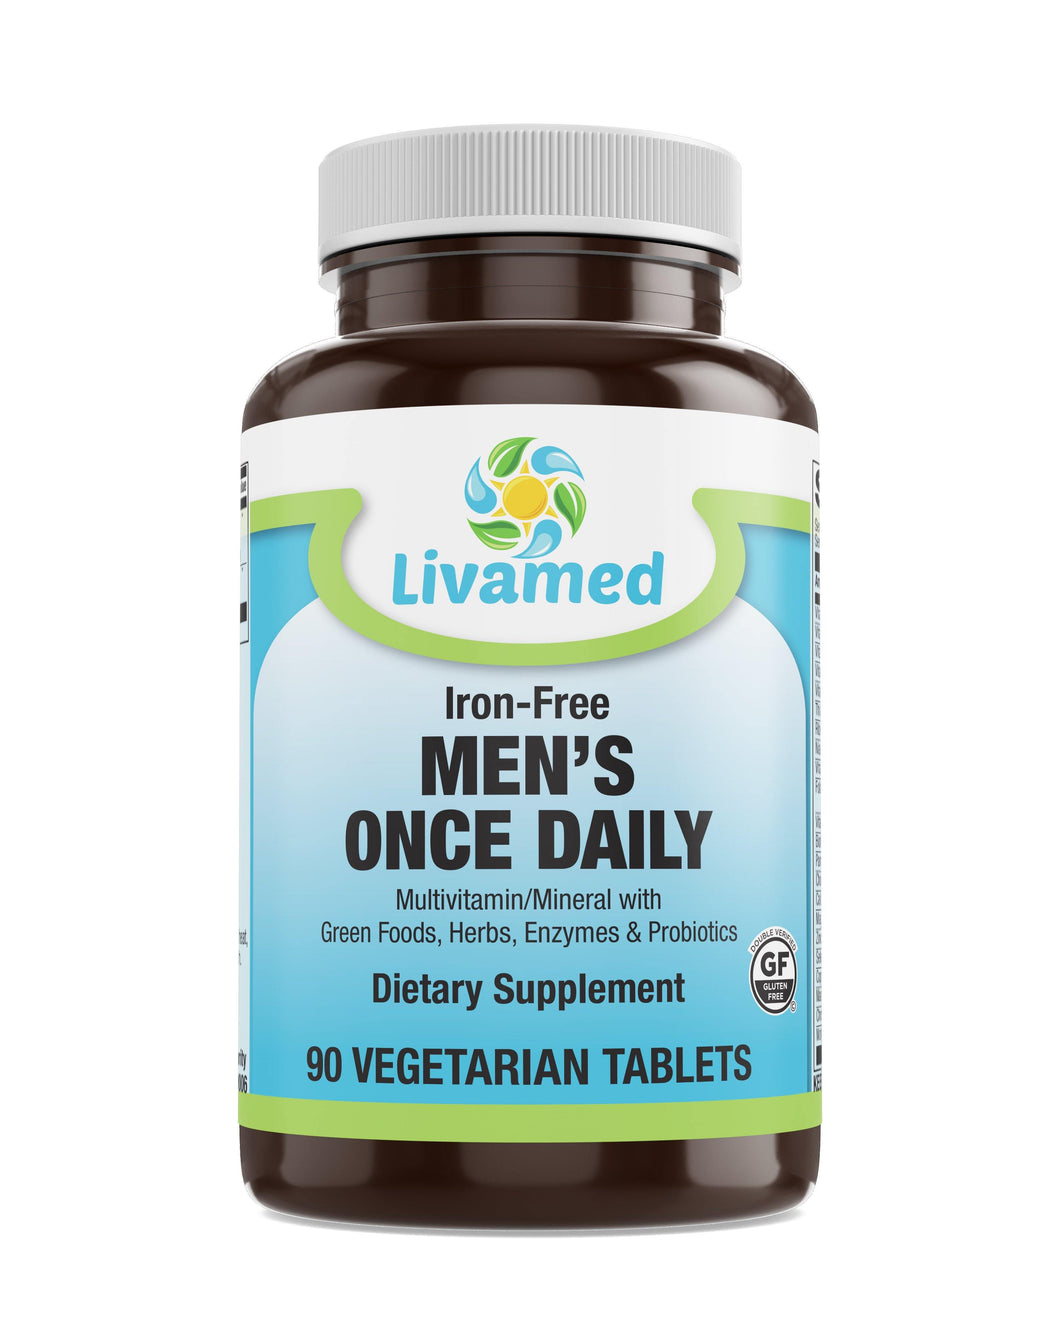 Livamed - Men's Once Daily Veg Tabs 90 Count